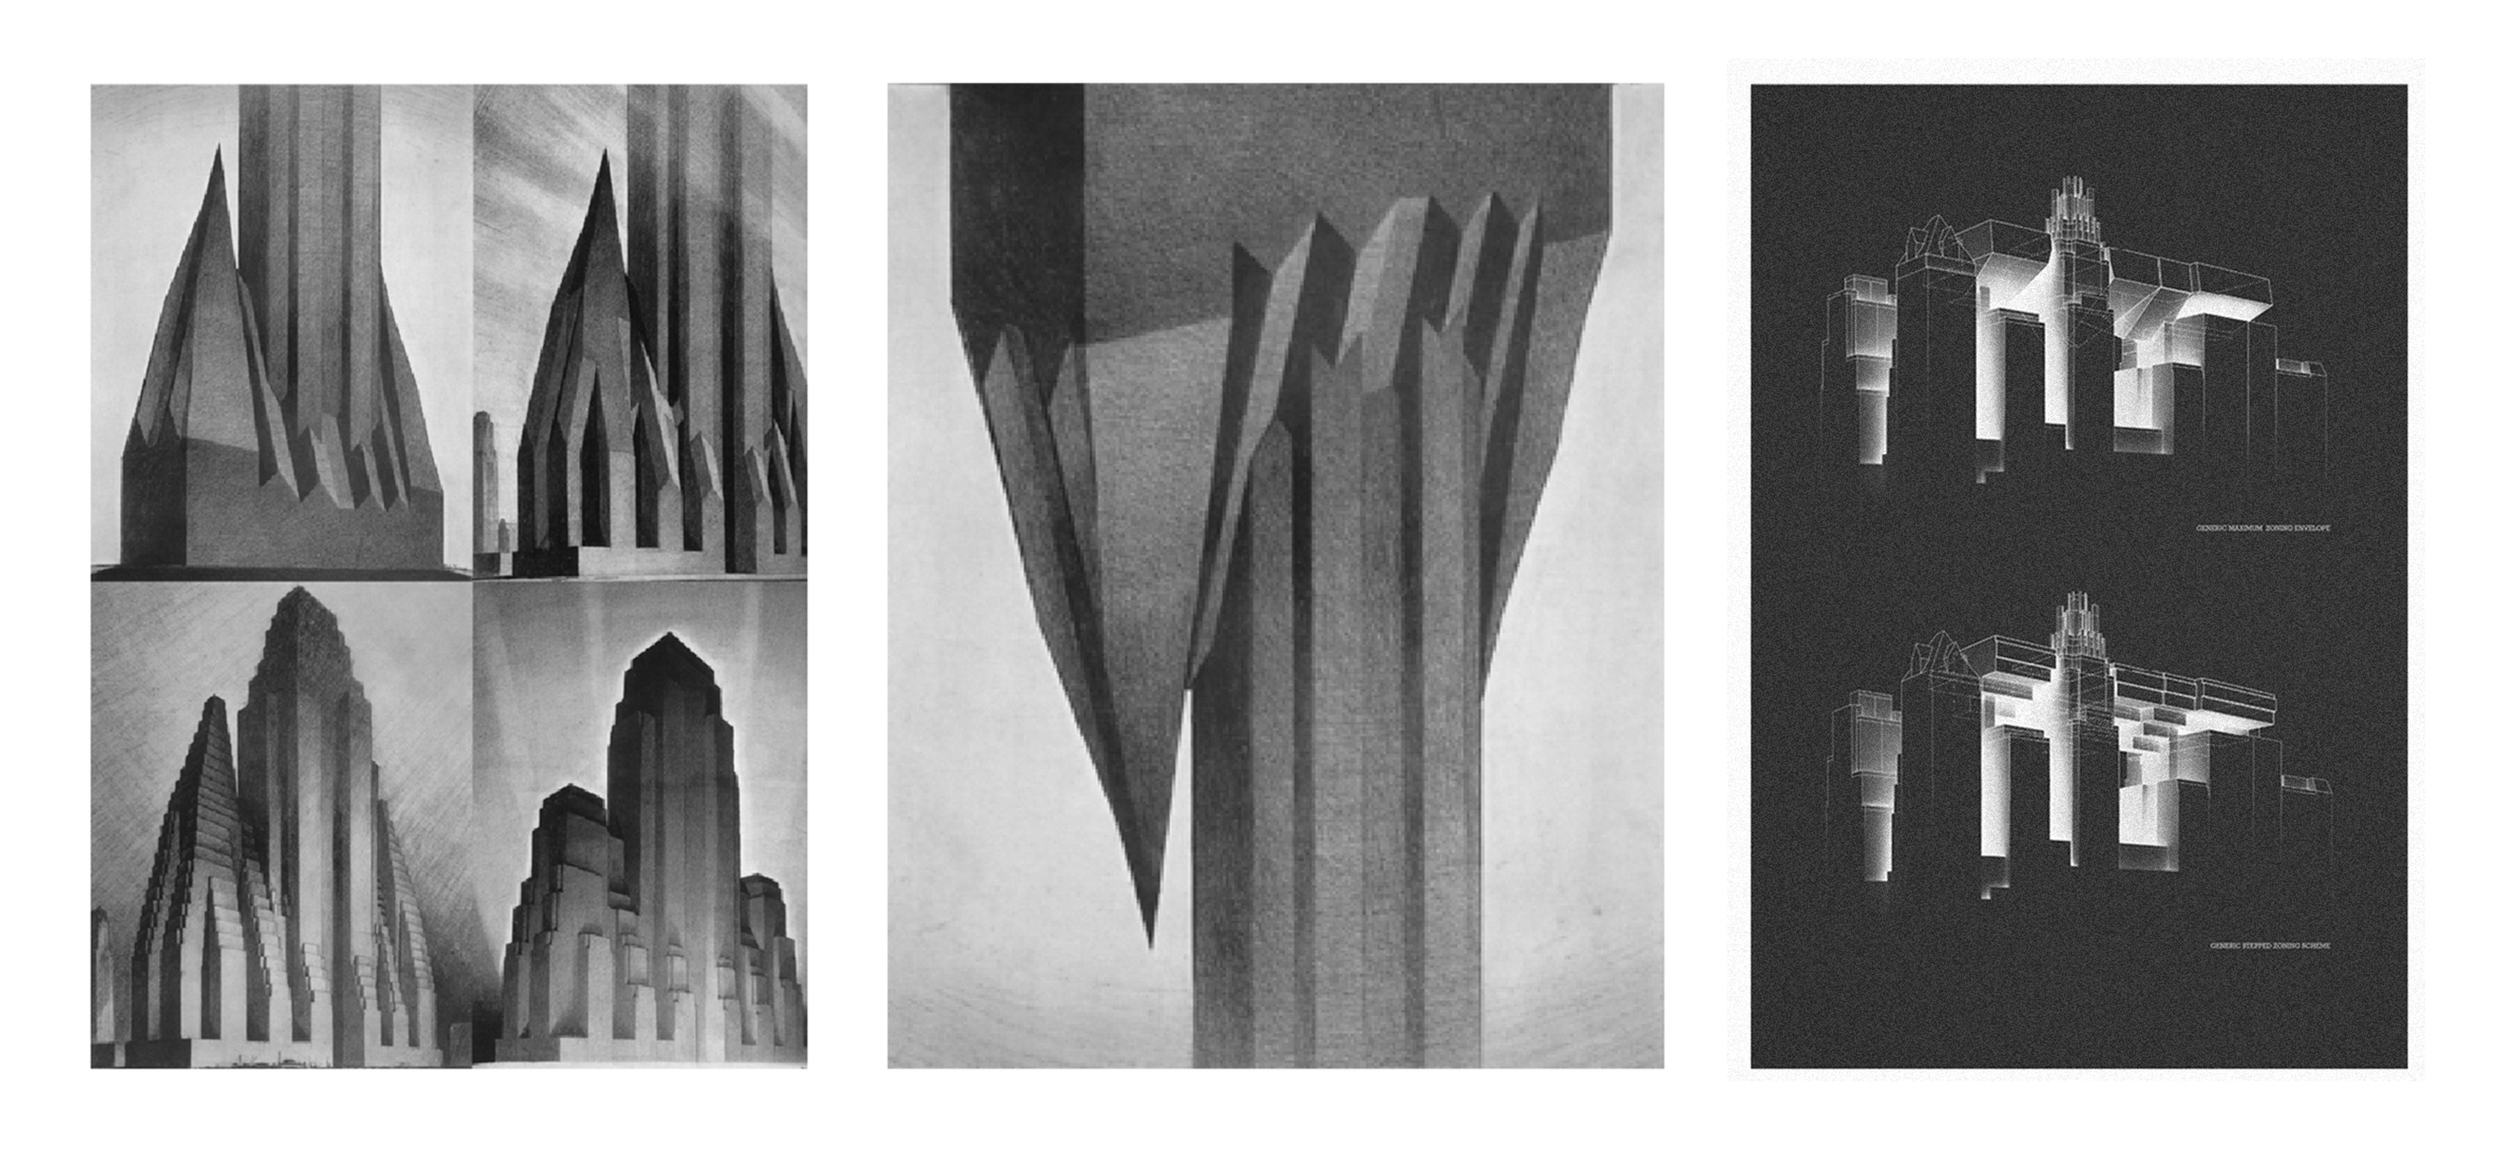 From Hugh Ferriss's Rendered Setbacks to Air Ops' Inverted Paradigm